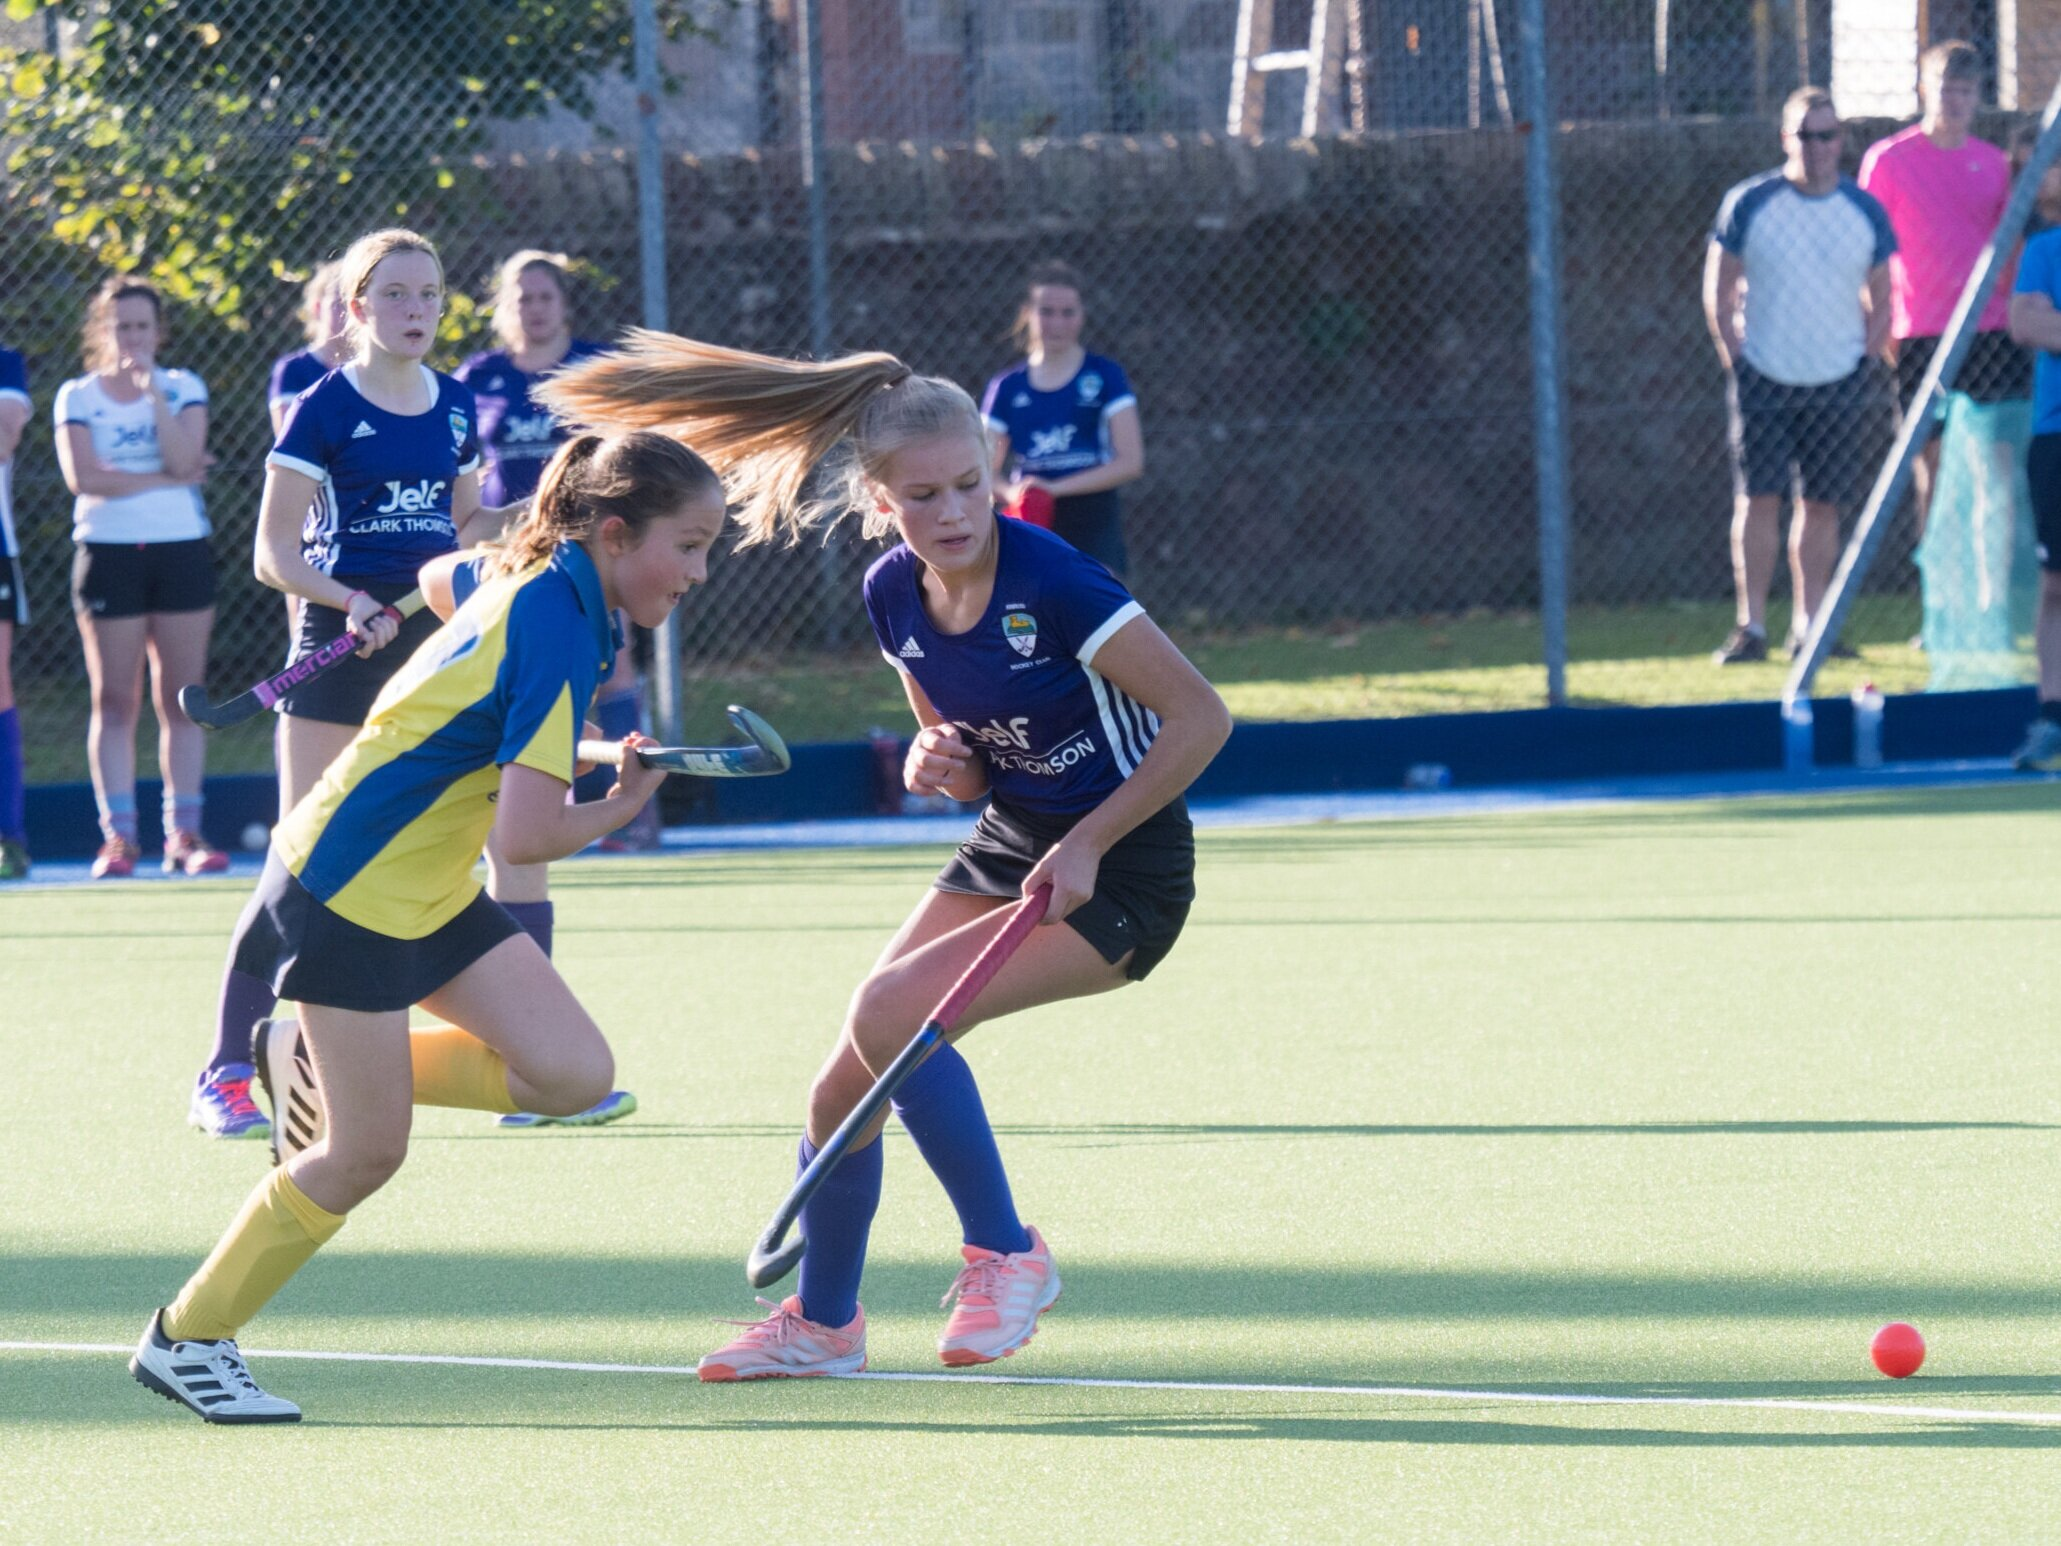 Ladies 3s vs Perthshire Sept 21st 2nd H-63.jpg